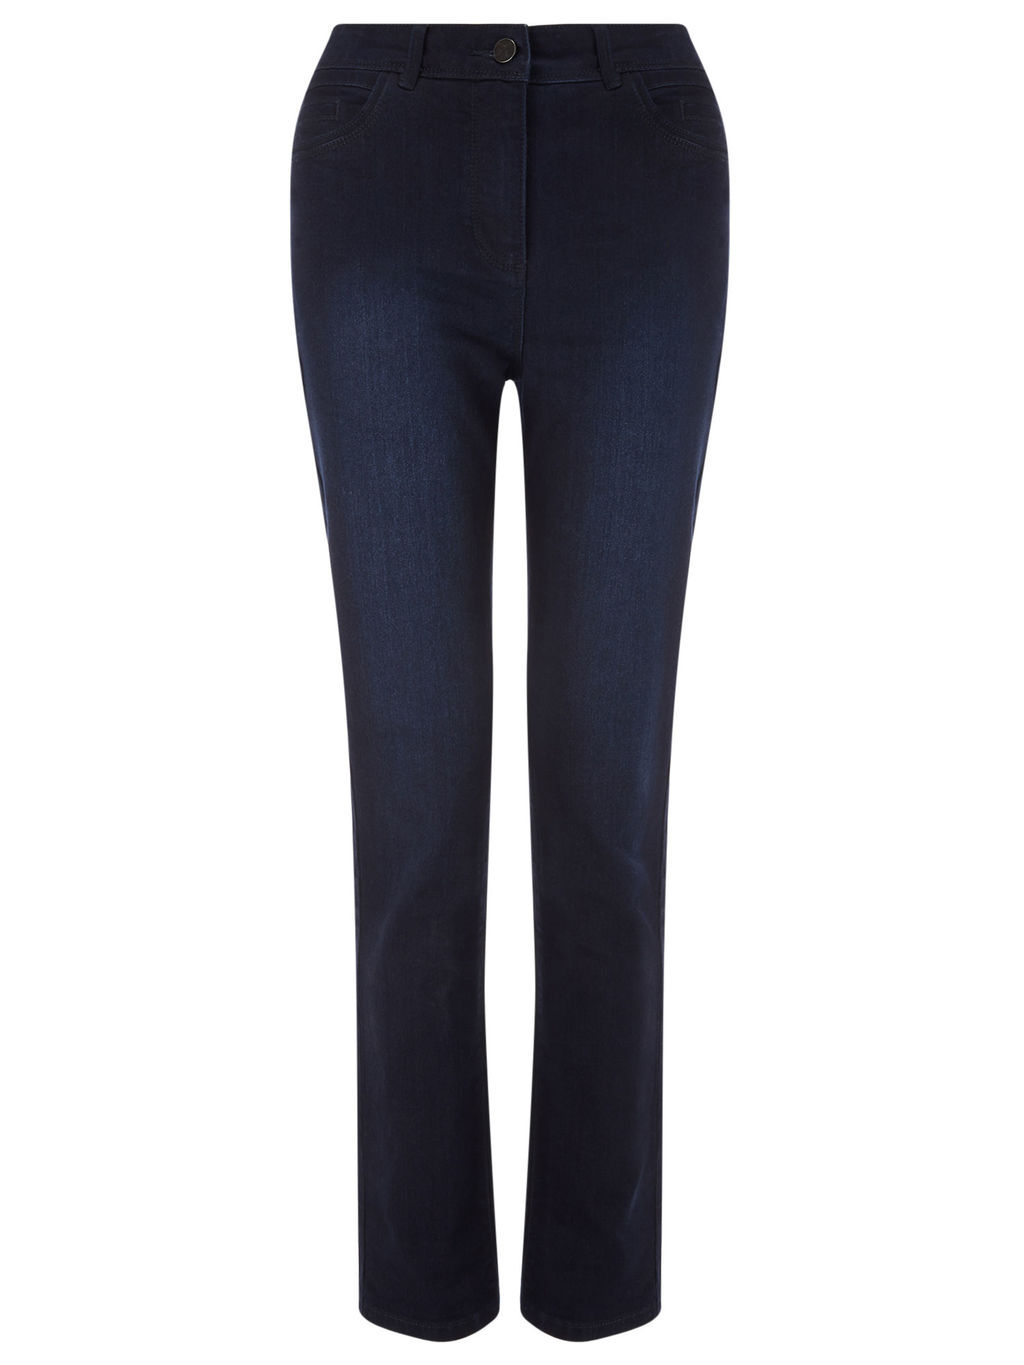 Dark Classic Jean Long - style: straight leg; length: standard; pattern: plain; waist: mid/regular rise; predominant colour: navy; occasions: casual, creative work; fibres: cotton - stretch; jeans detail: dark wash; texture group: denim; pattern type: fabric; season: s/s 2016; wardrobe: basic